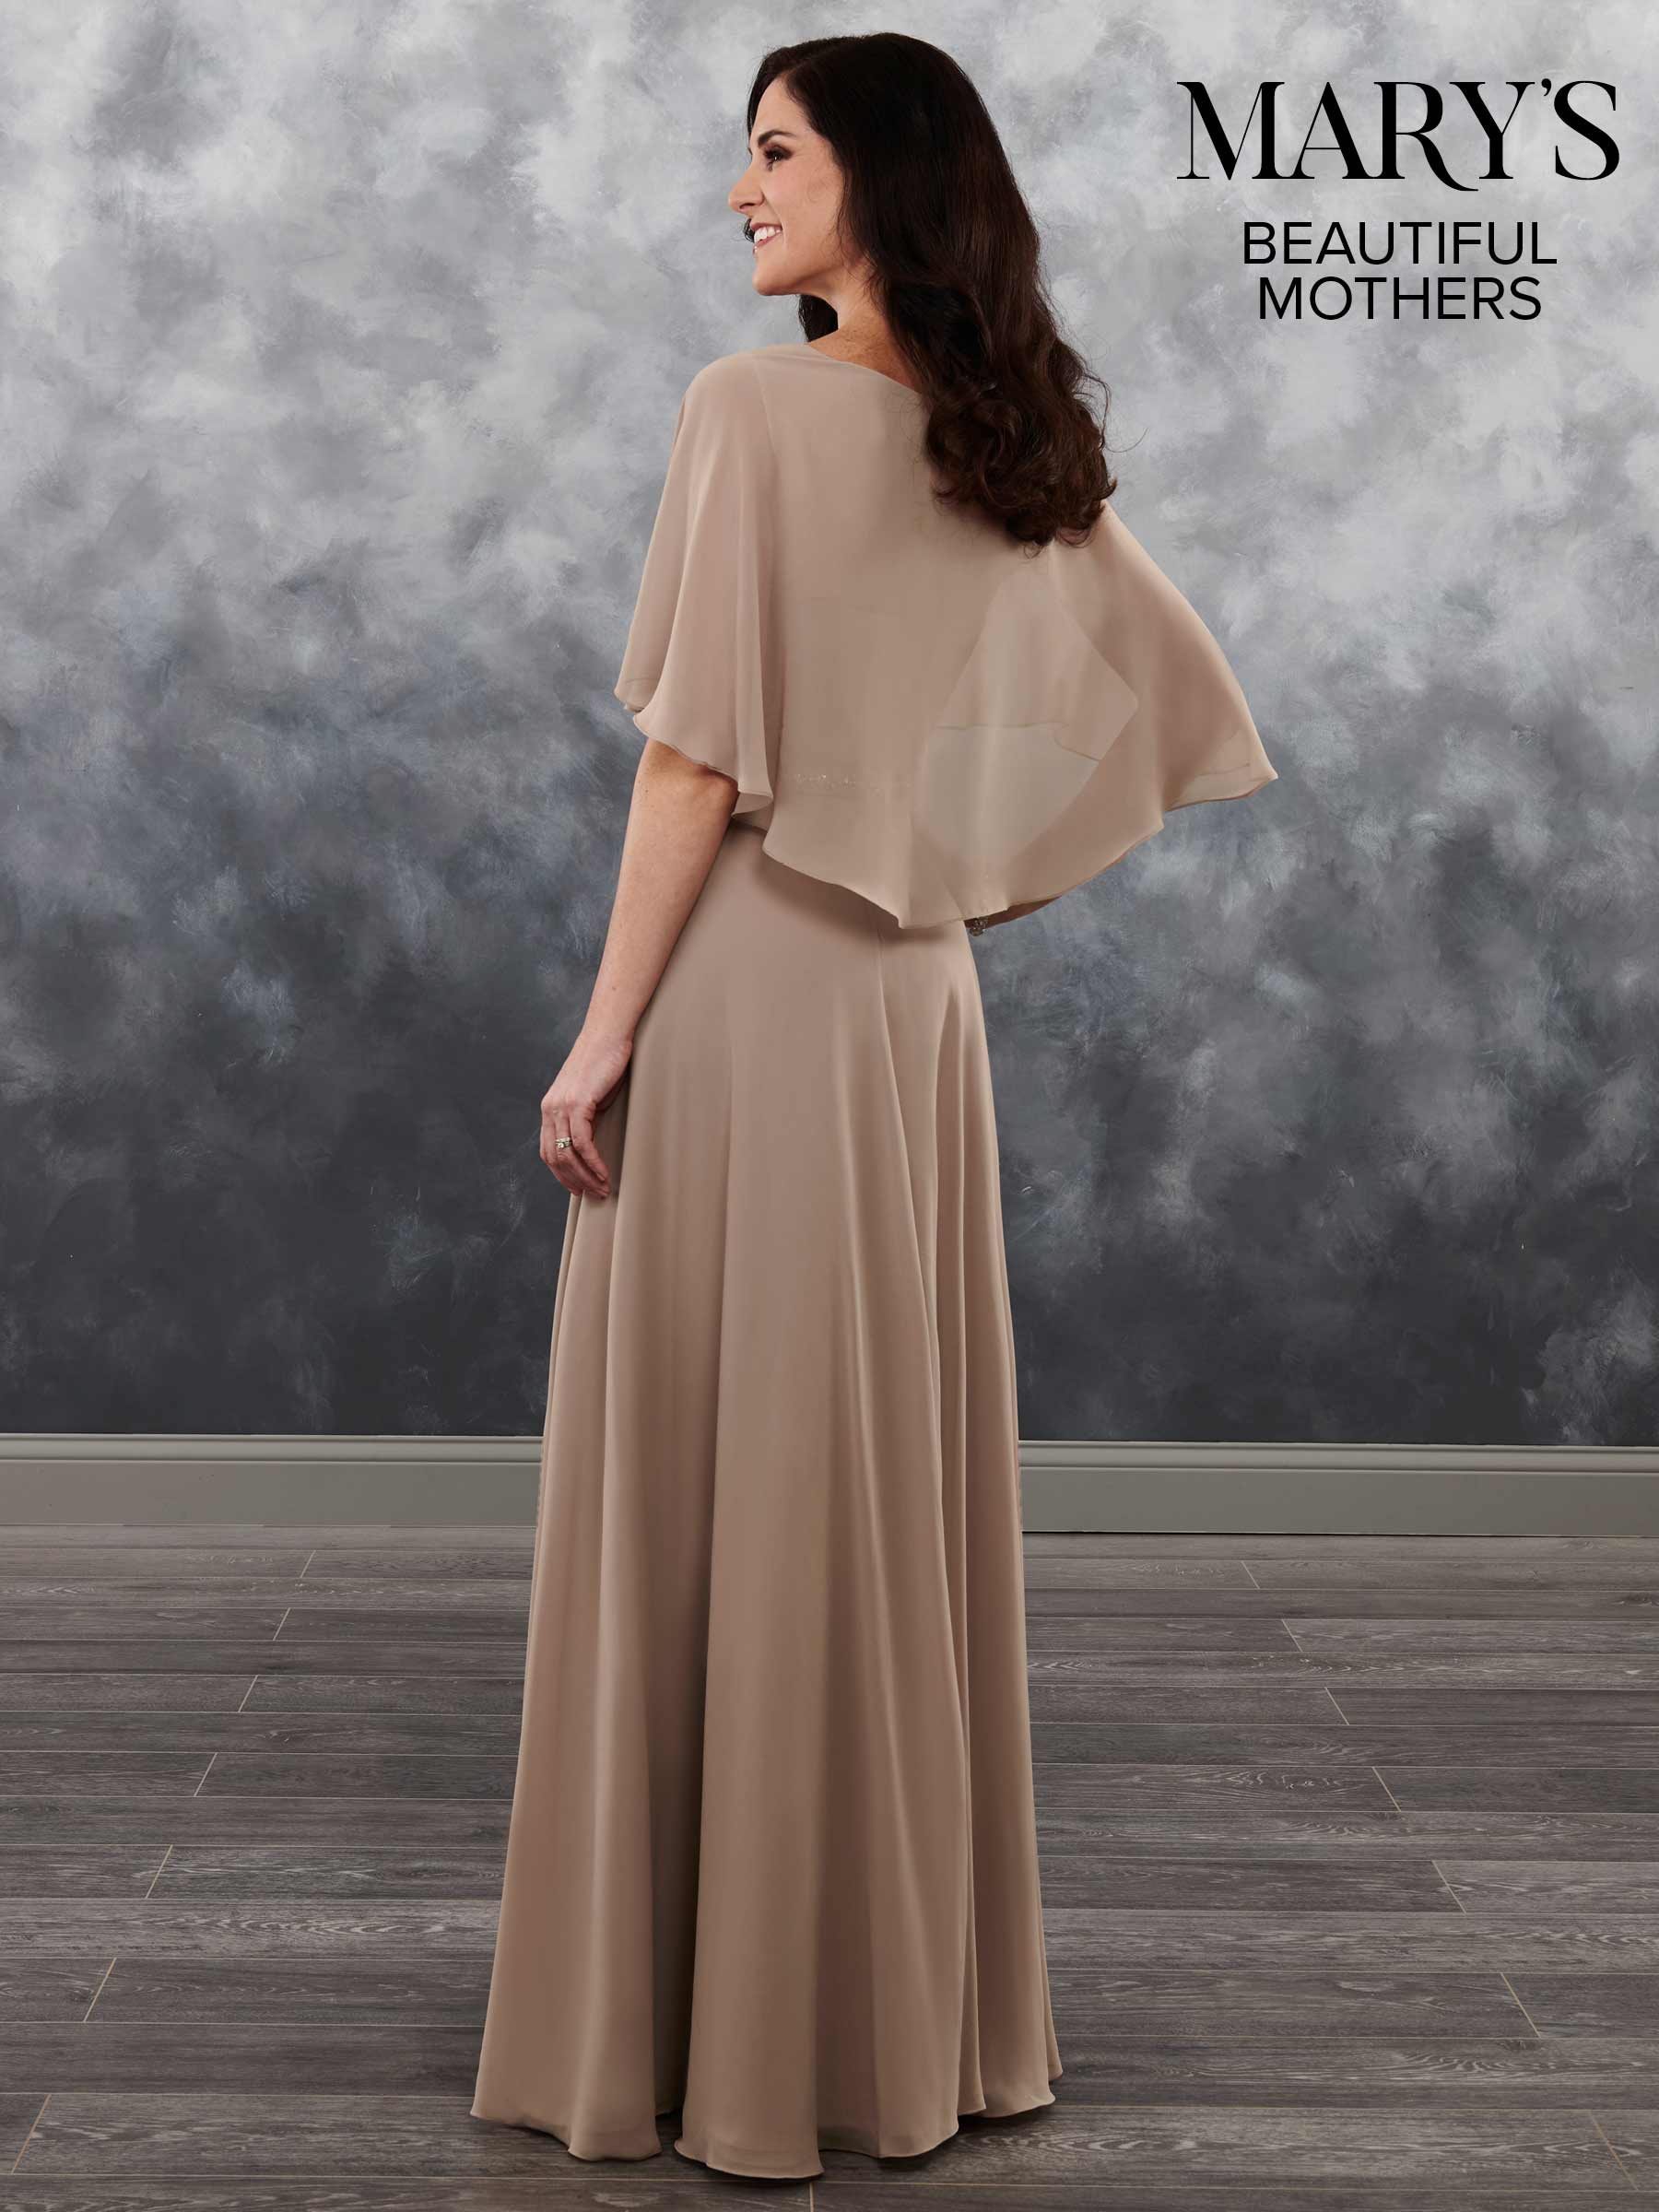 Mother Of The Bride Dresses | Beautiful Mothers | Style - MB8021